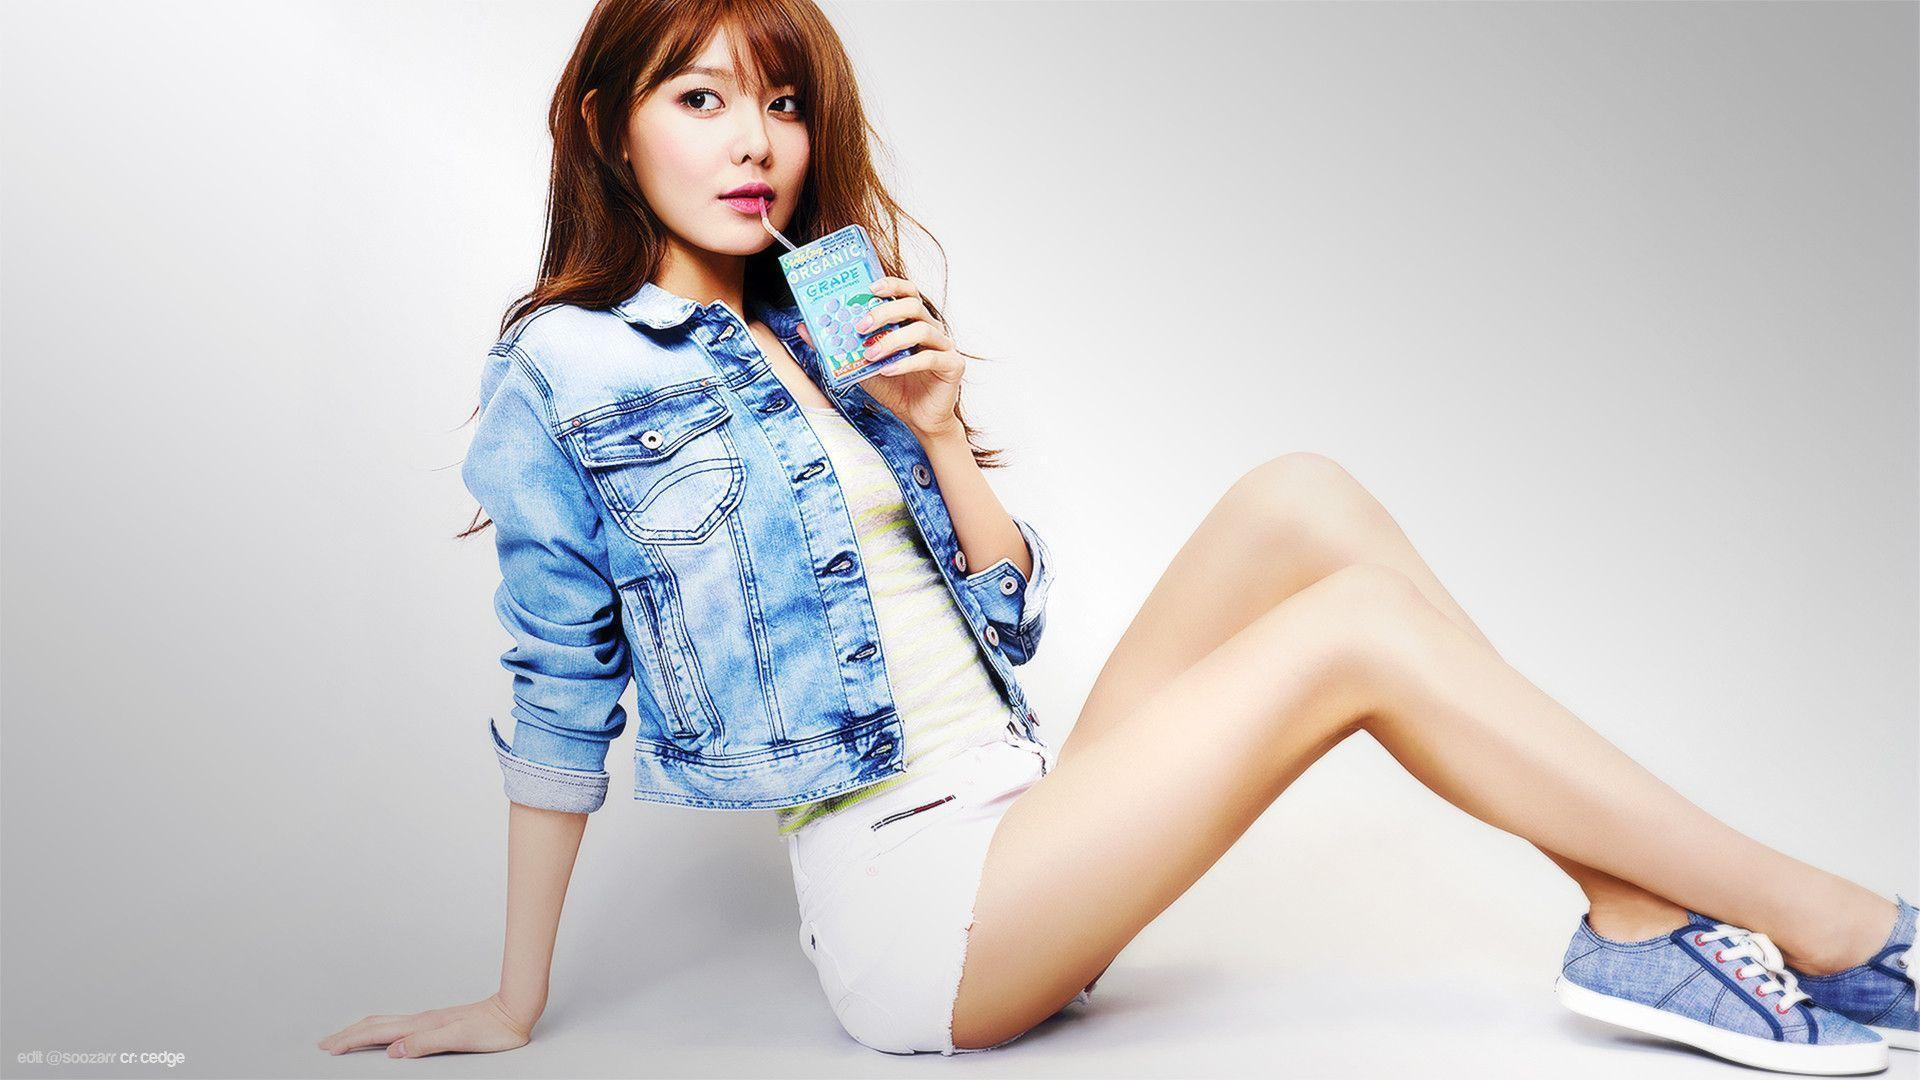 Sooyoung Wallpaper 1920x1080 sooyoung wallpapers - wallpaper cave